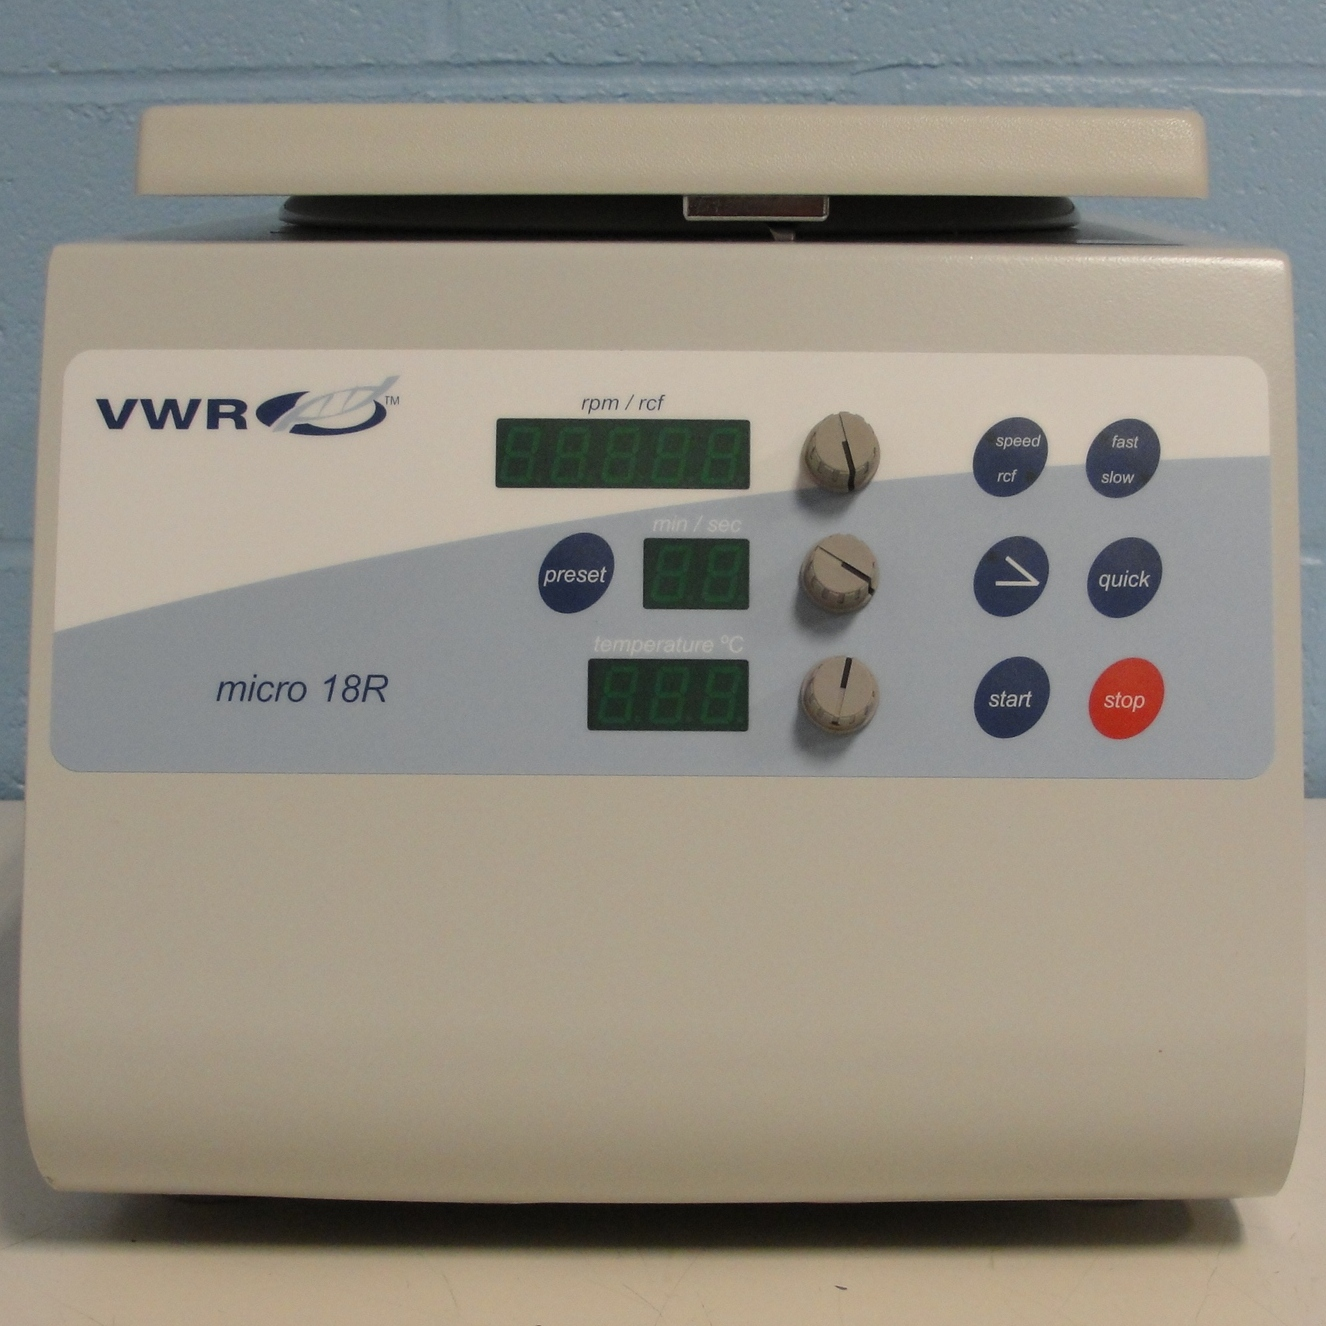 VWR 18R Refrigerated Microcentrifuge with Rotor Image